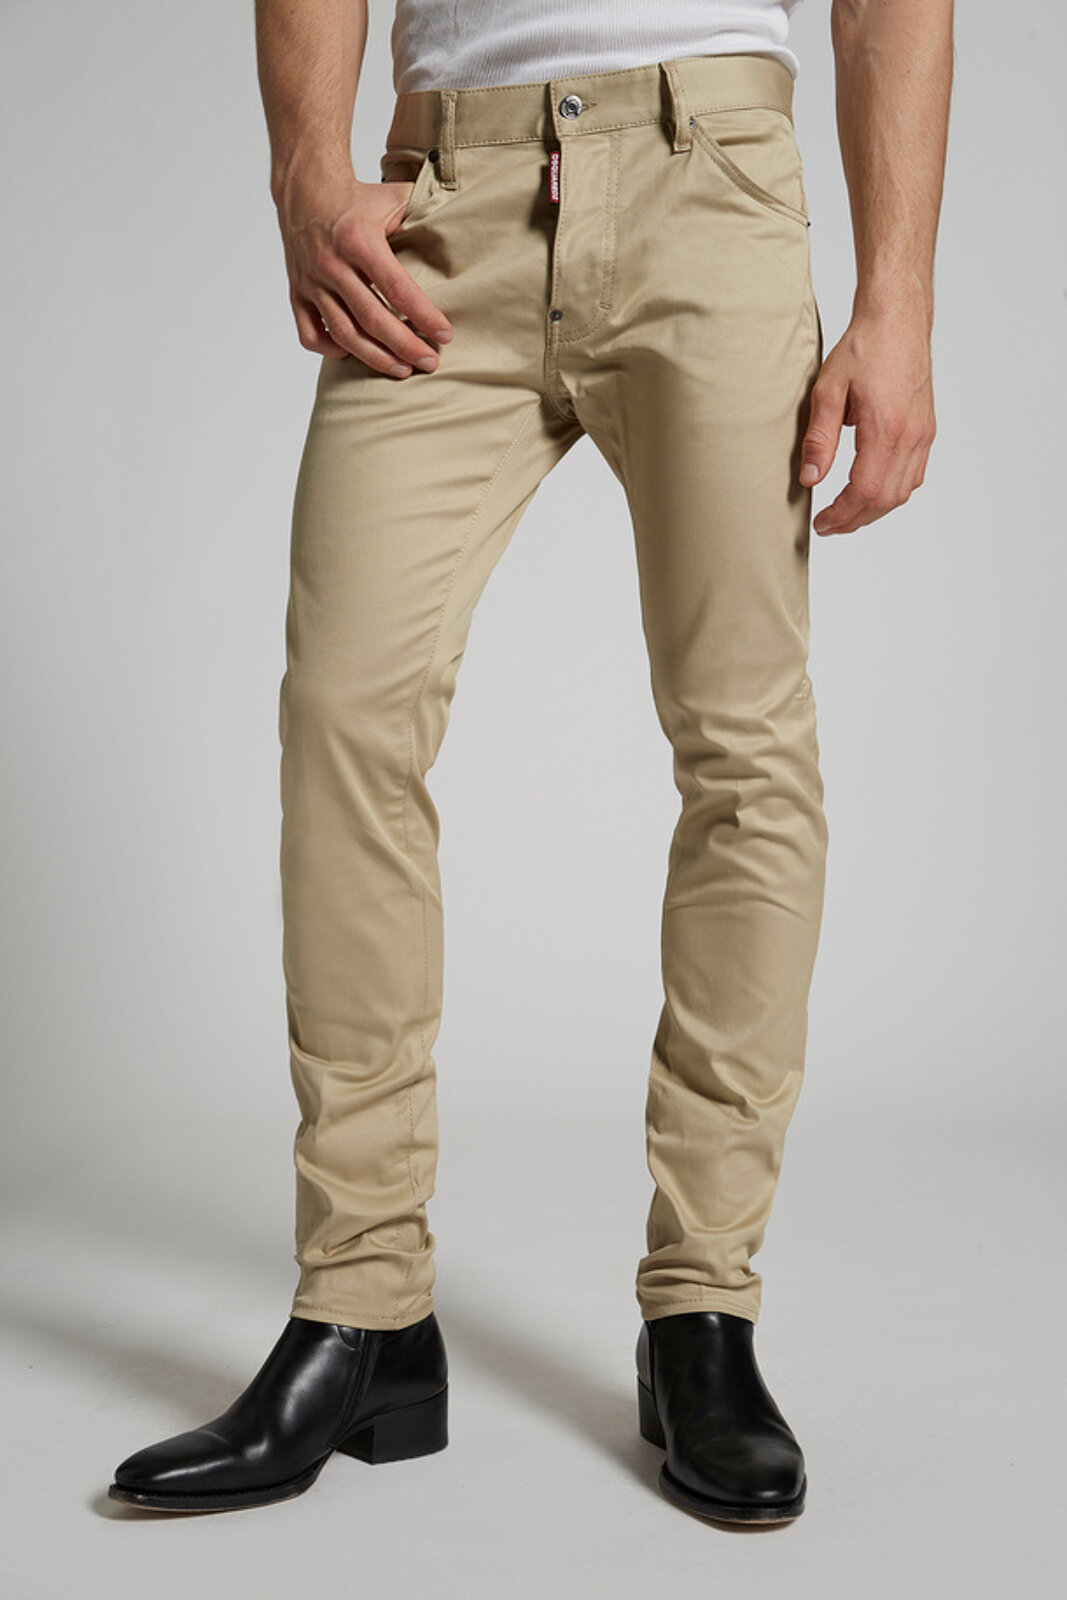 Cotton Twill Cool Guy Jeans - Dsquared2